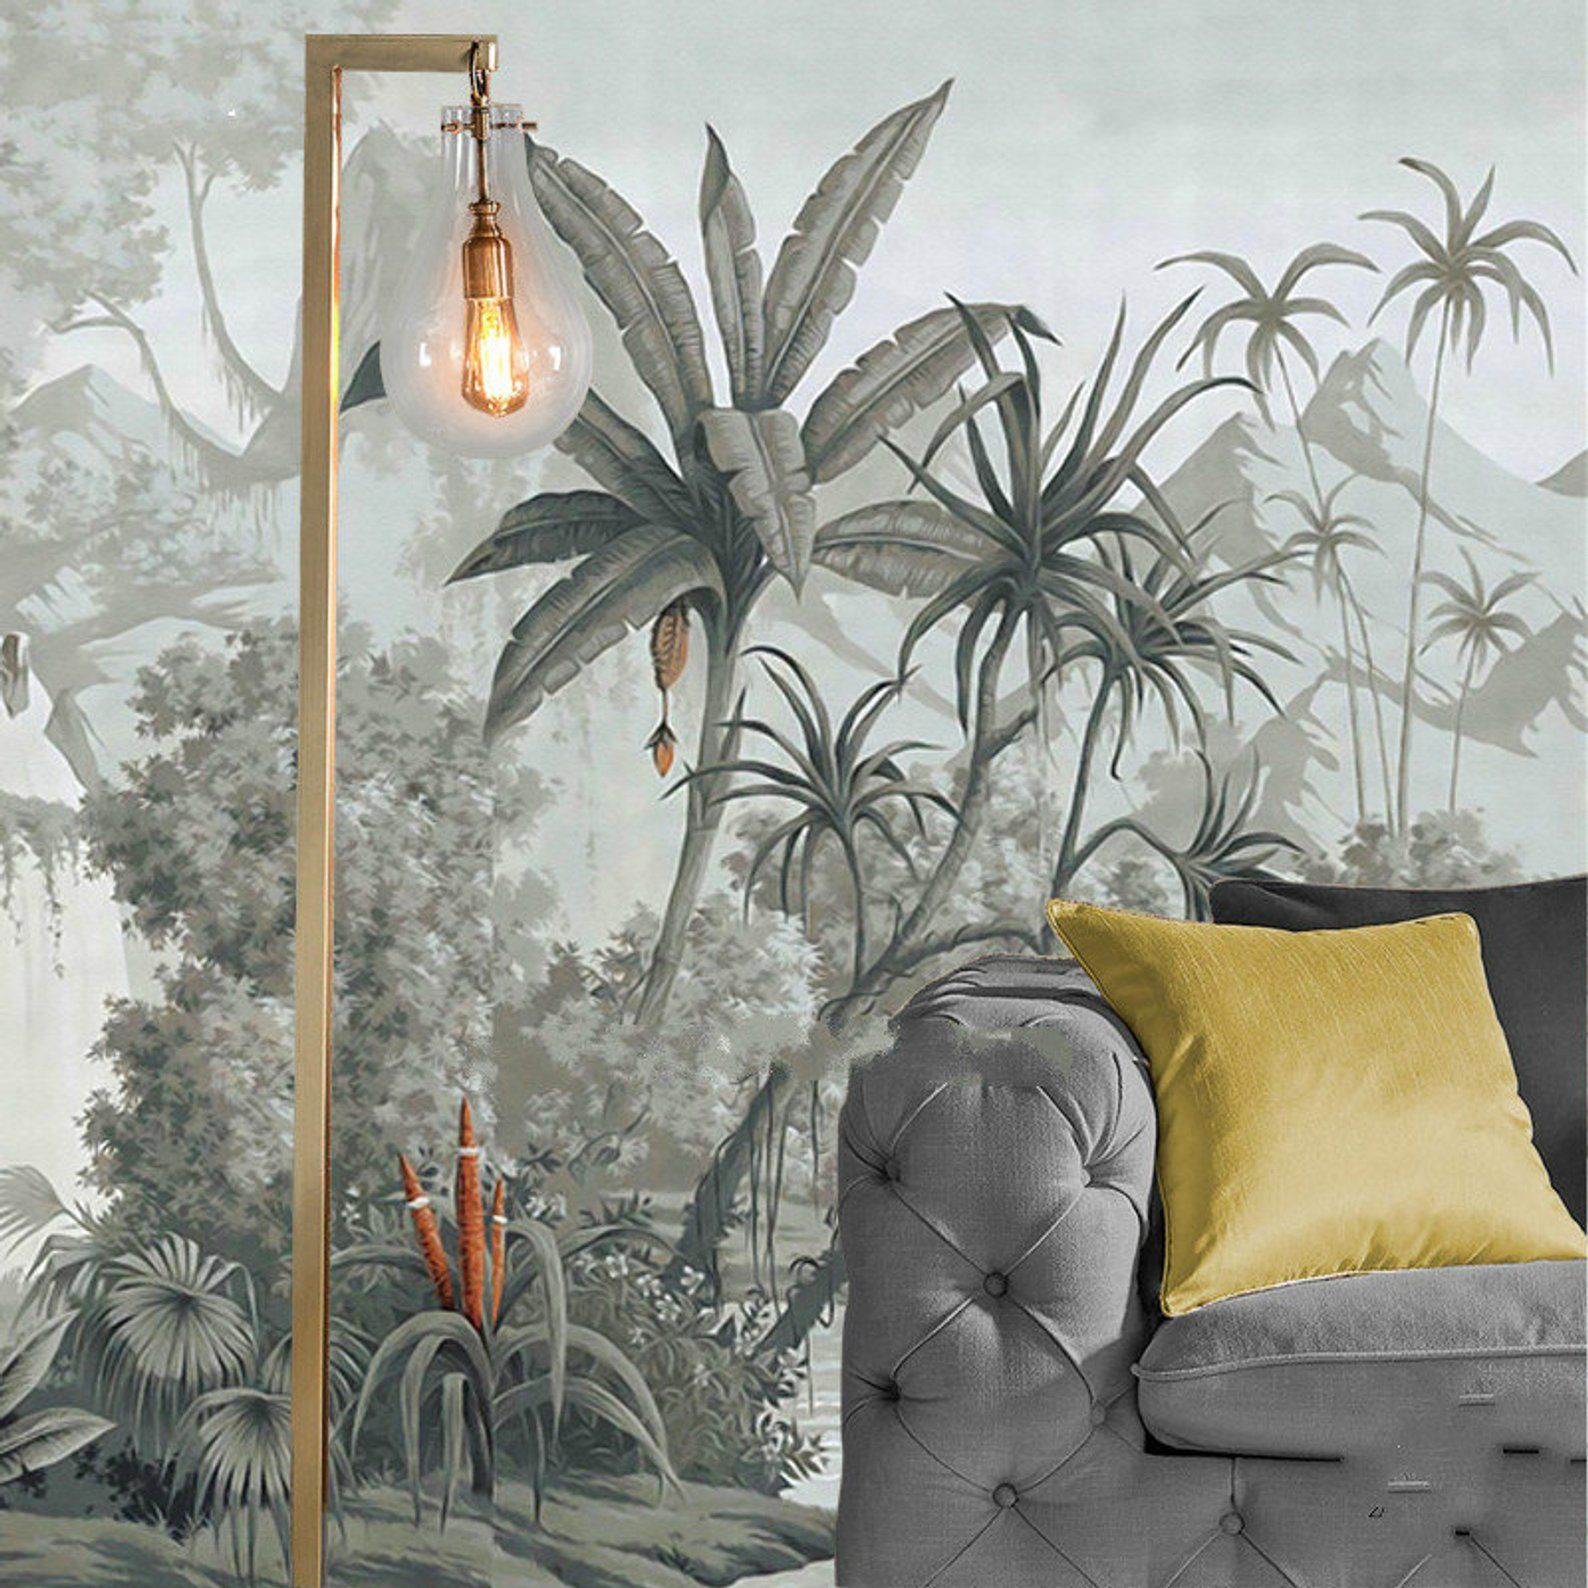 Hand Painted Retro Tropical Plants Wallpaper Wall Mural